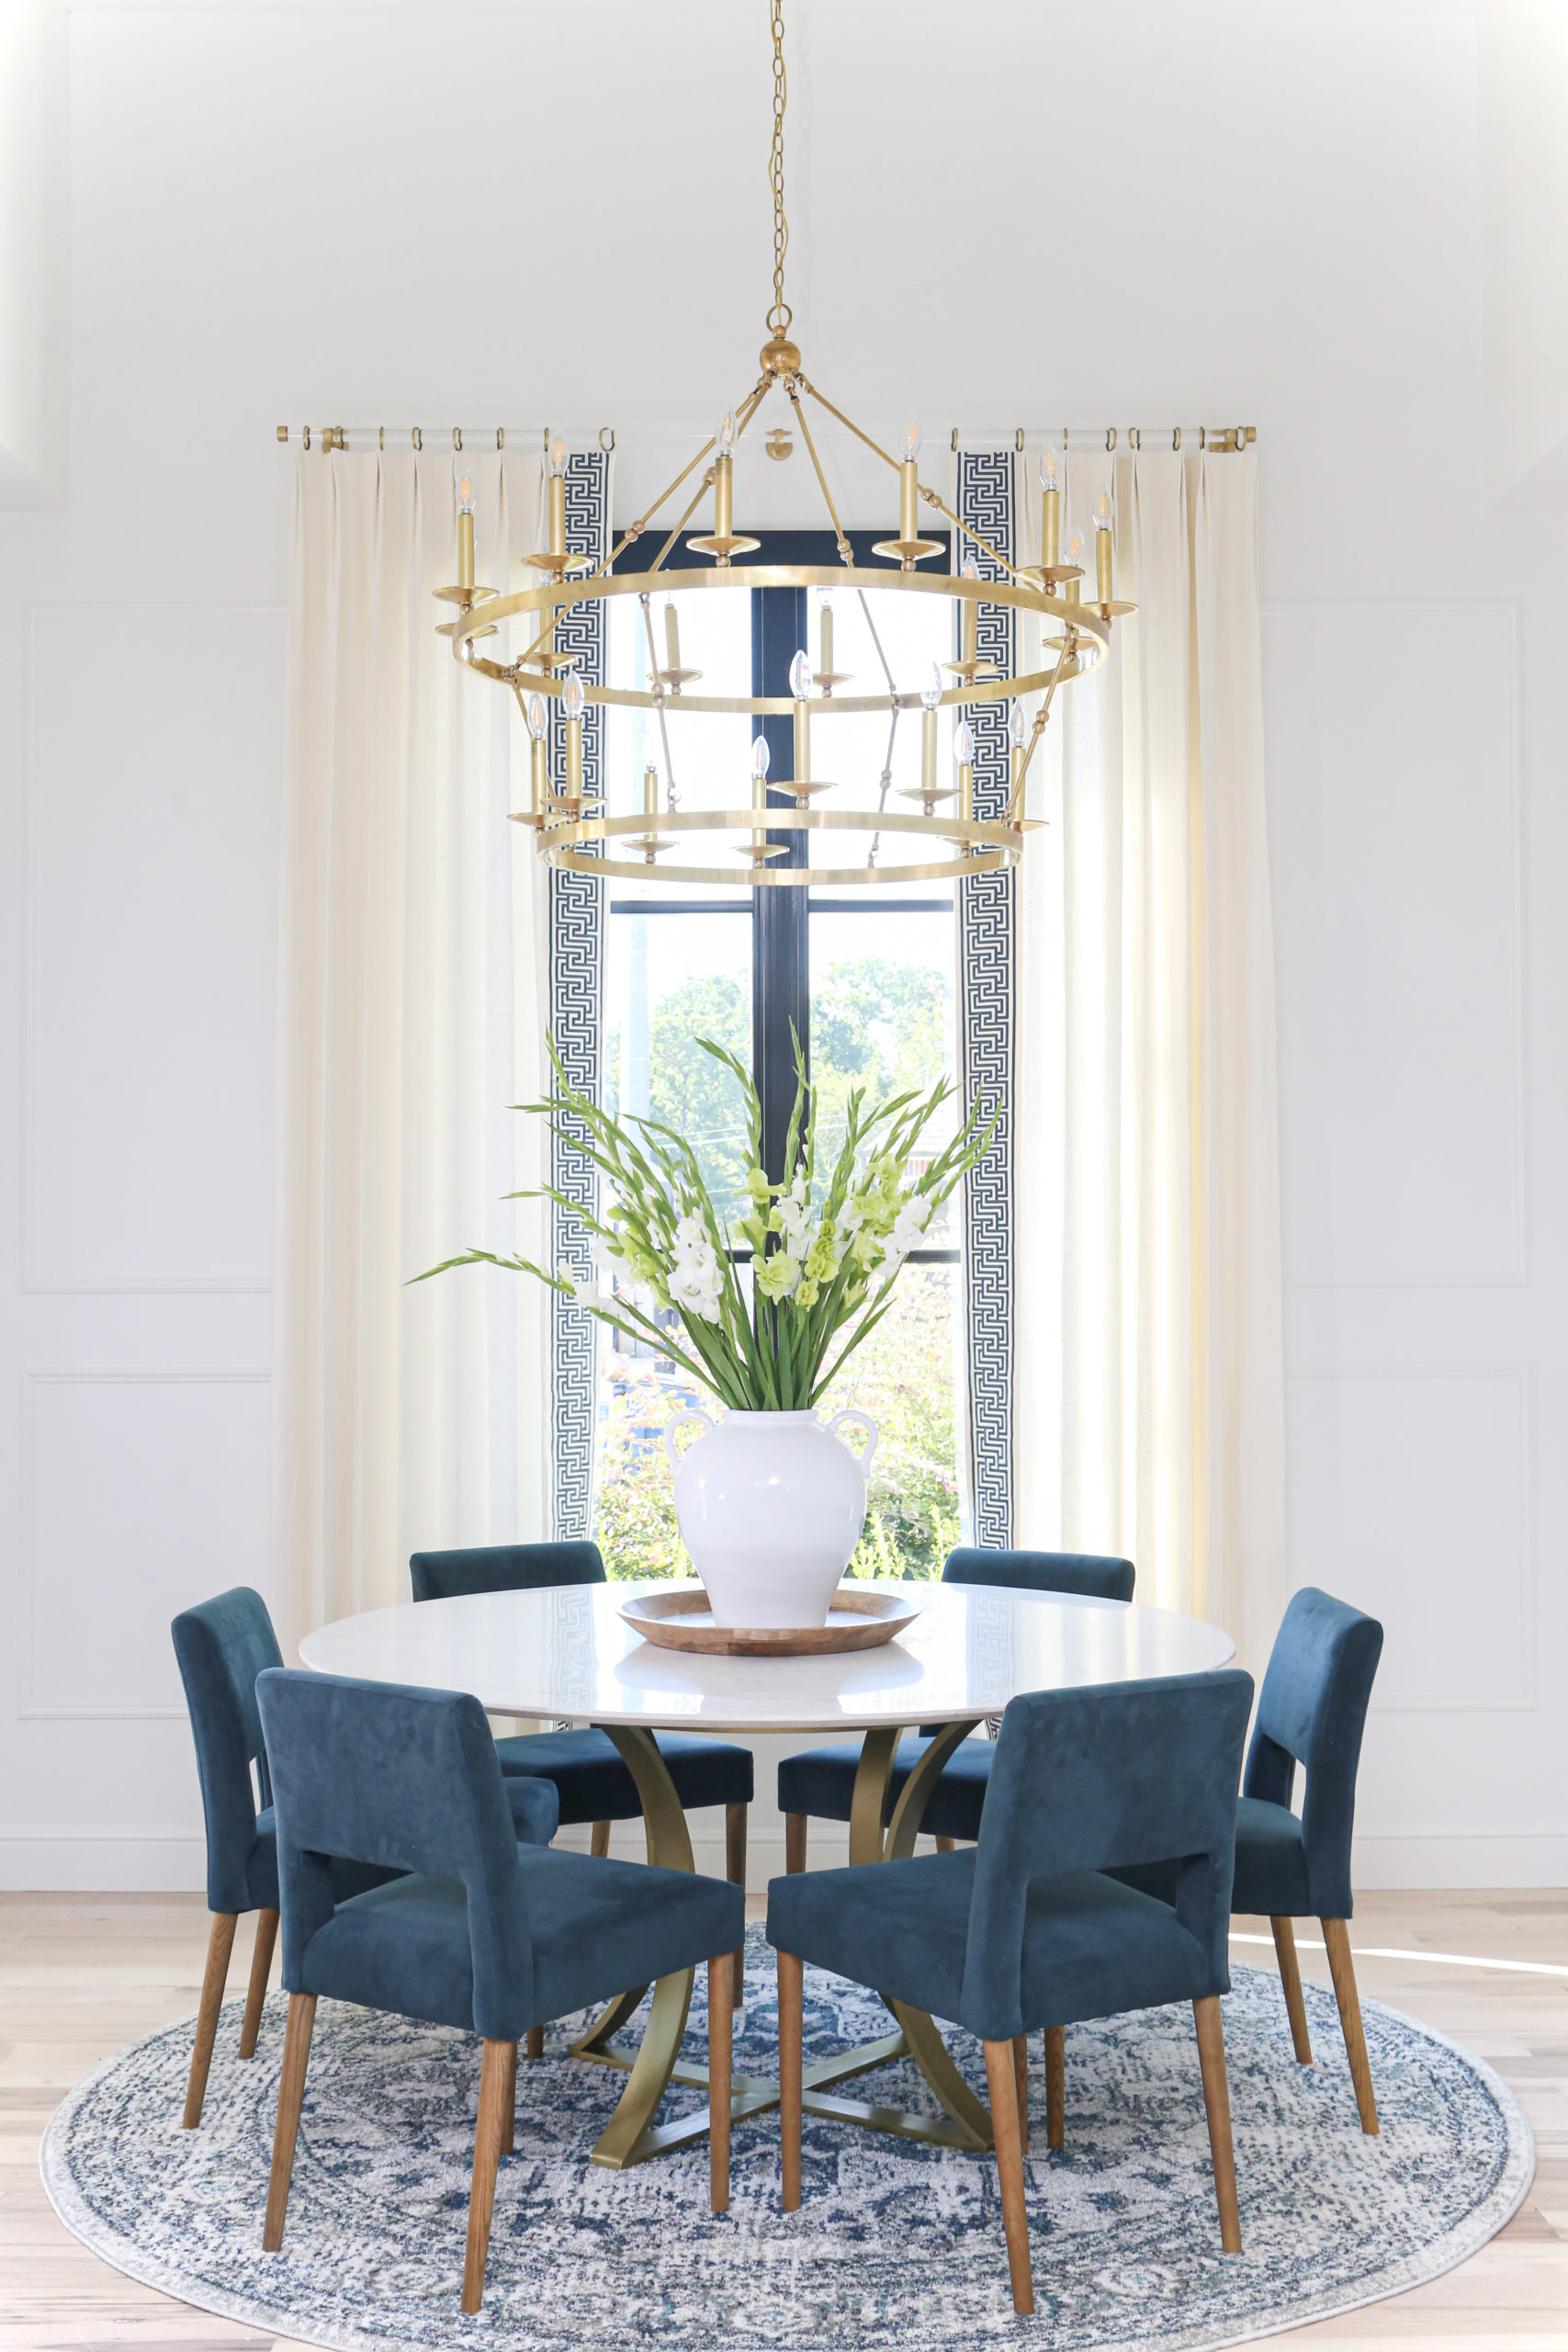 Breakfast Nook Reveal: The Miller House!